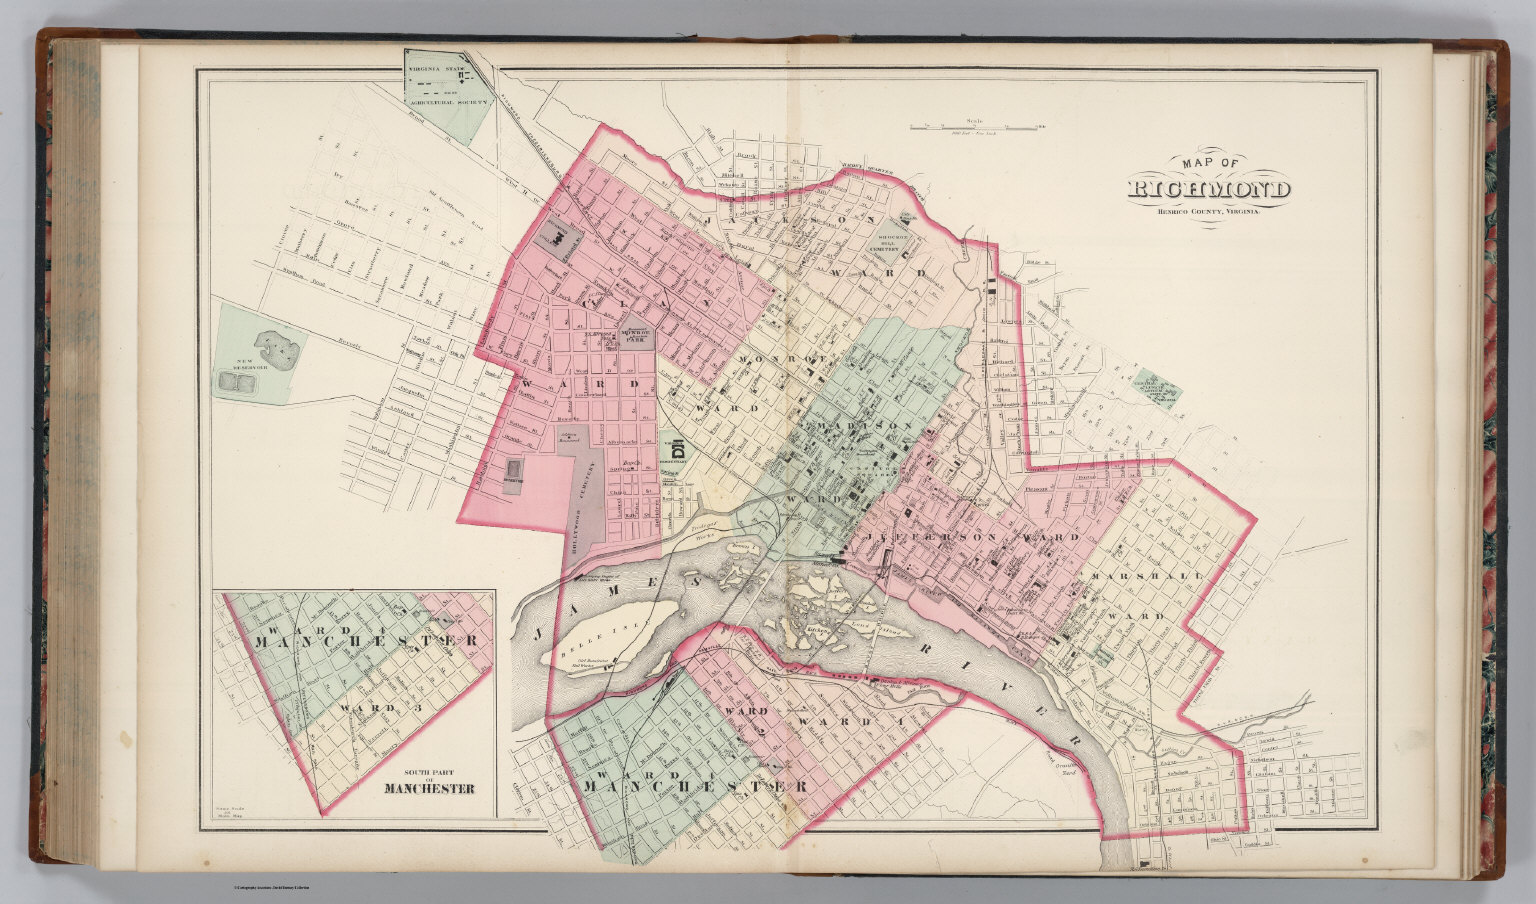 Richmond, Virginia. - David Rumsey Historical Map Collection